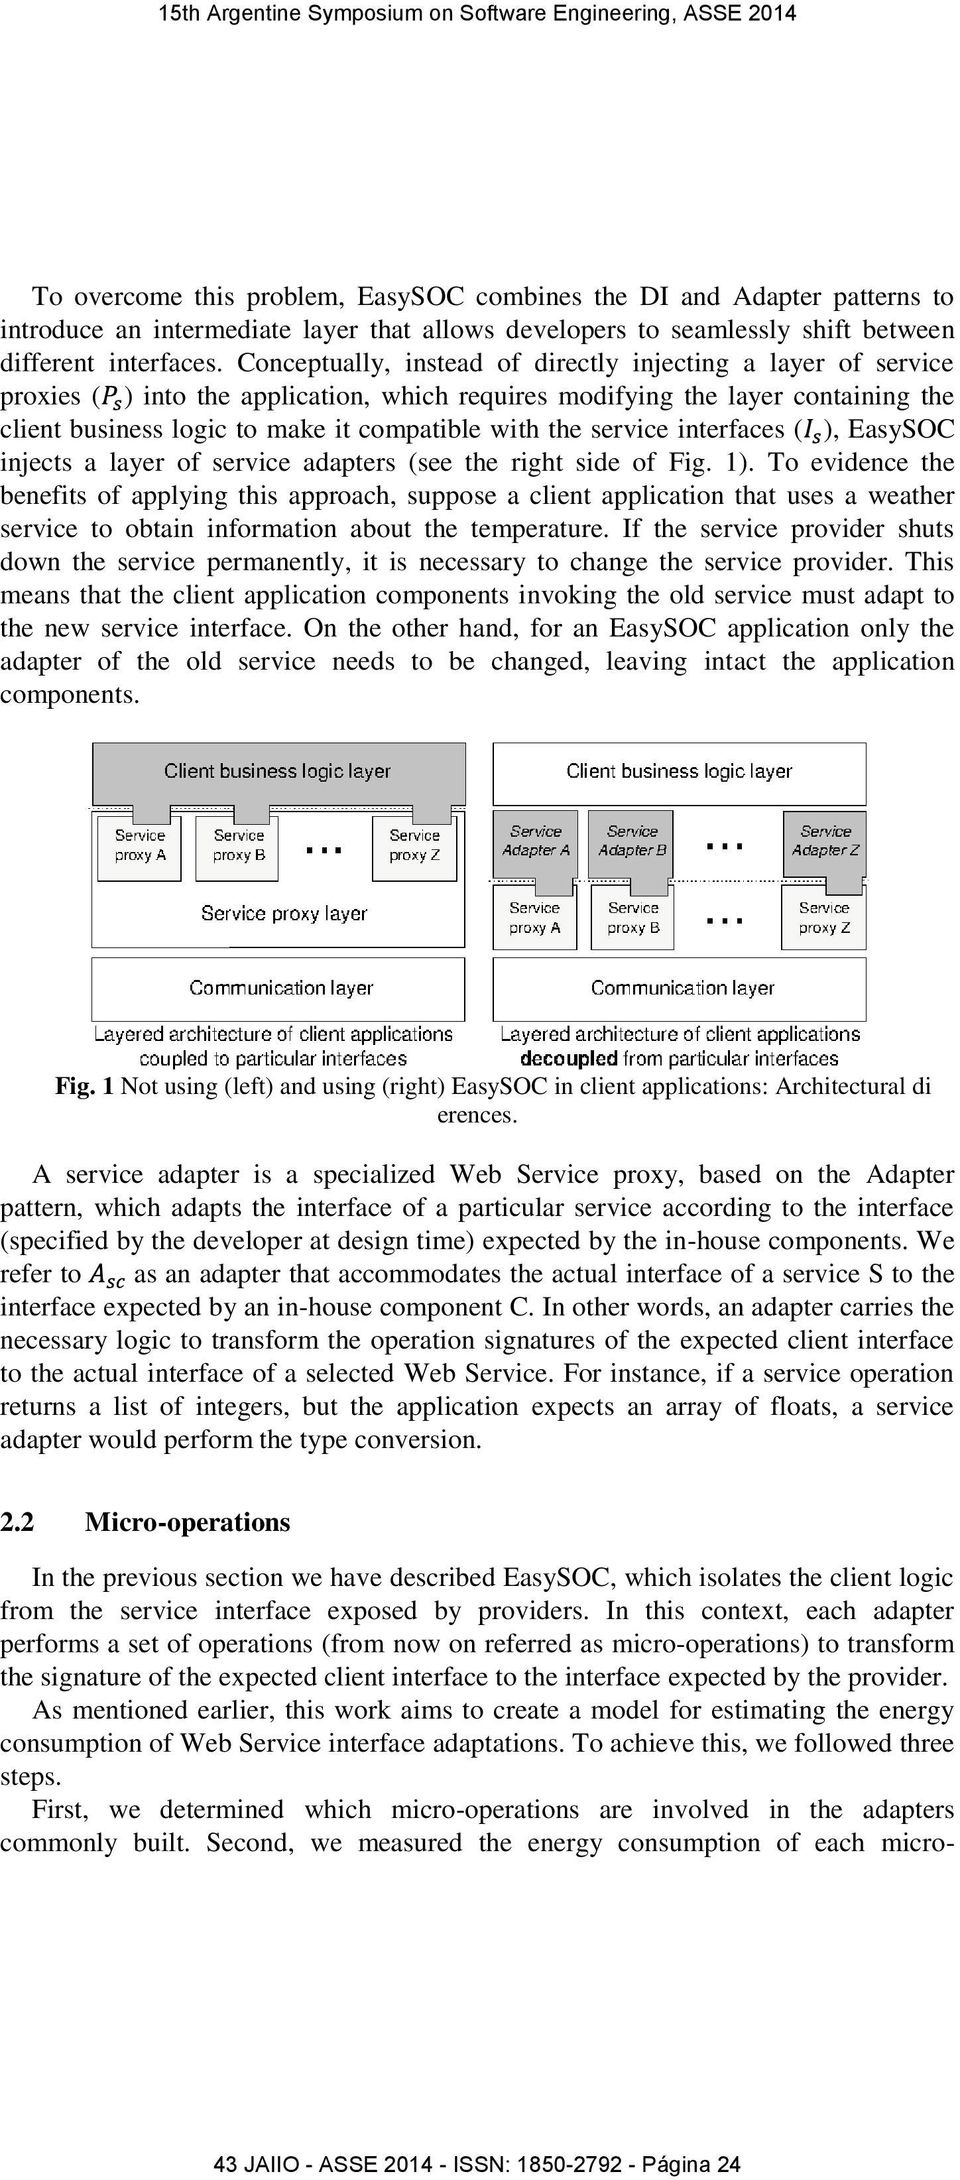 service interfaces ( ), EasySOC injects a layer of service adapters (see the right side of Fig. 1).